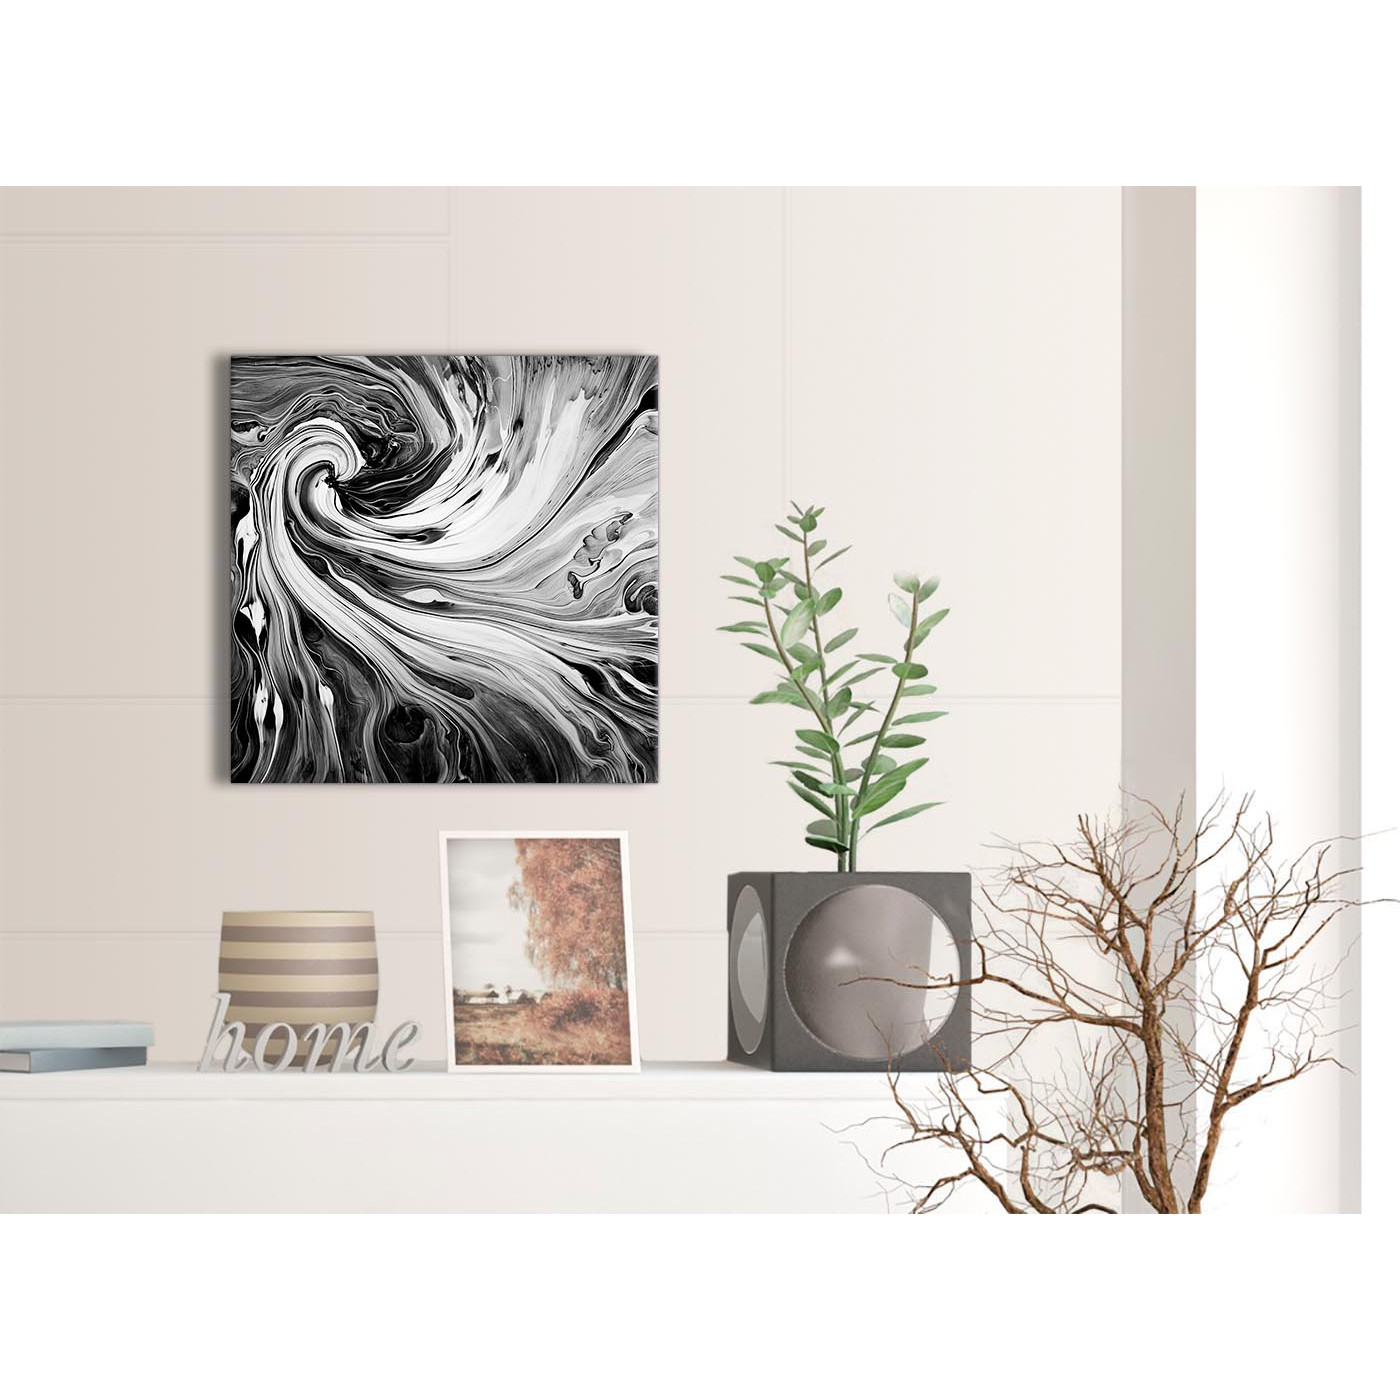 Display Gallery Item 3; Contemporary Black White Grey Swirls Modern  Abstract Canvas Wall Art Modern 49cm Square 1S354S For Your Display Gallery  Item 4